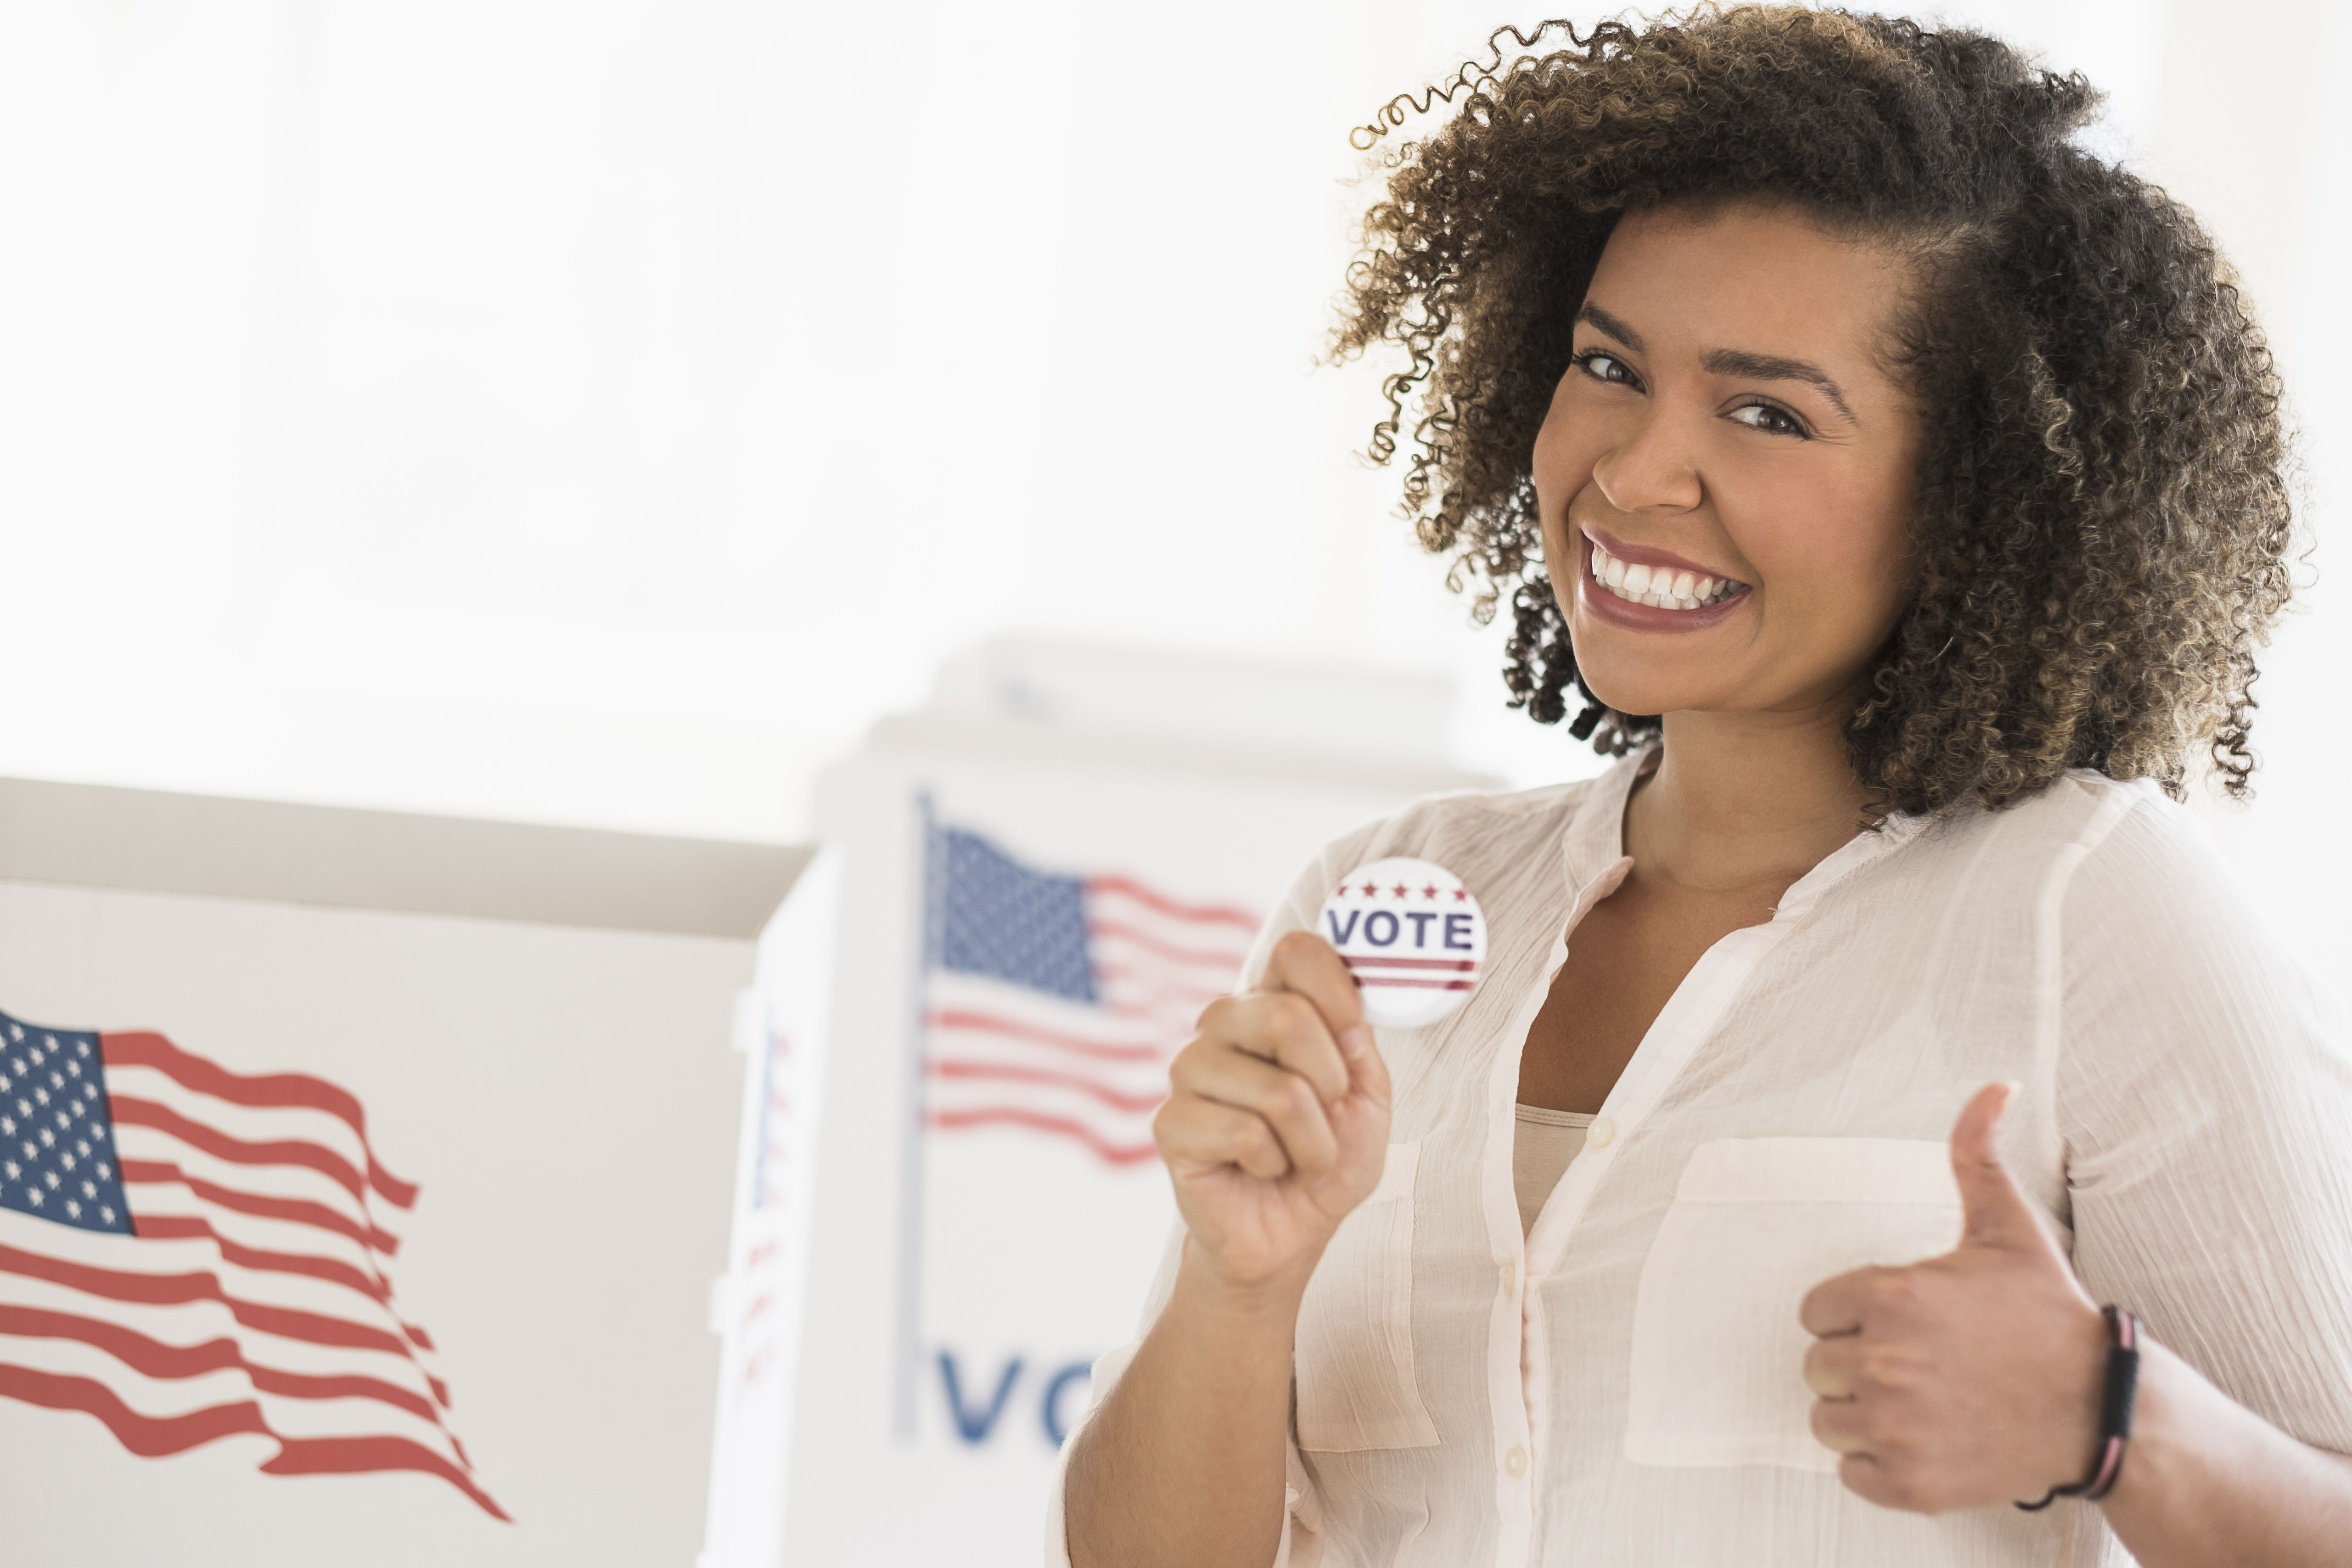 Woman holding voting badge and smiling